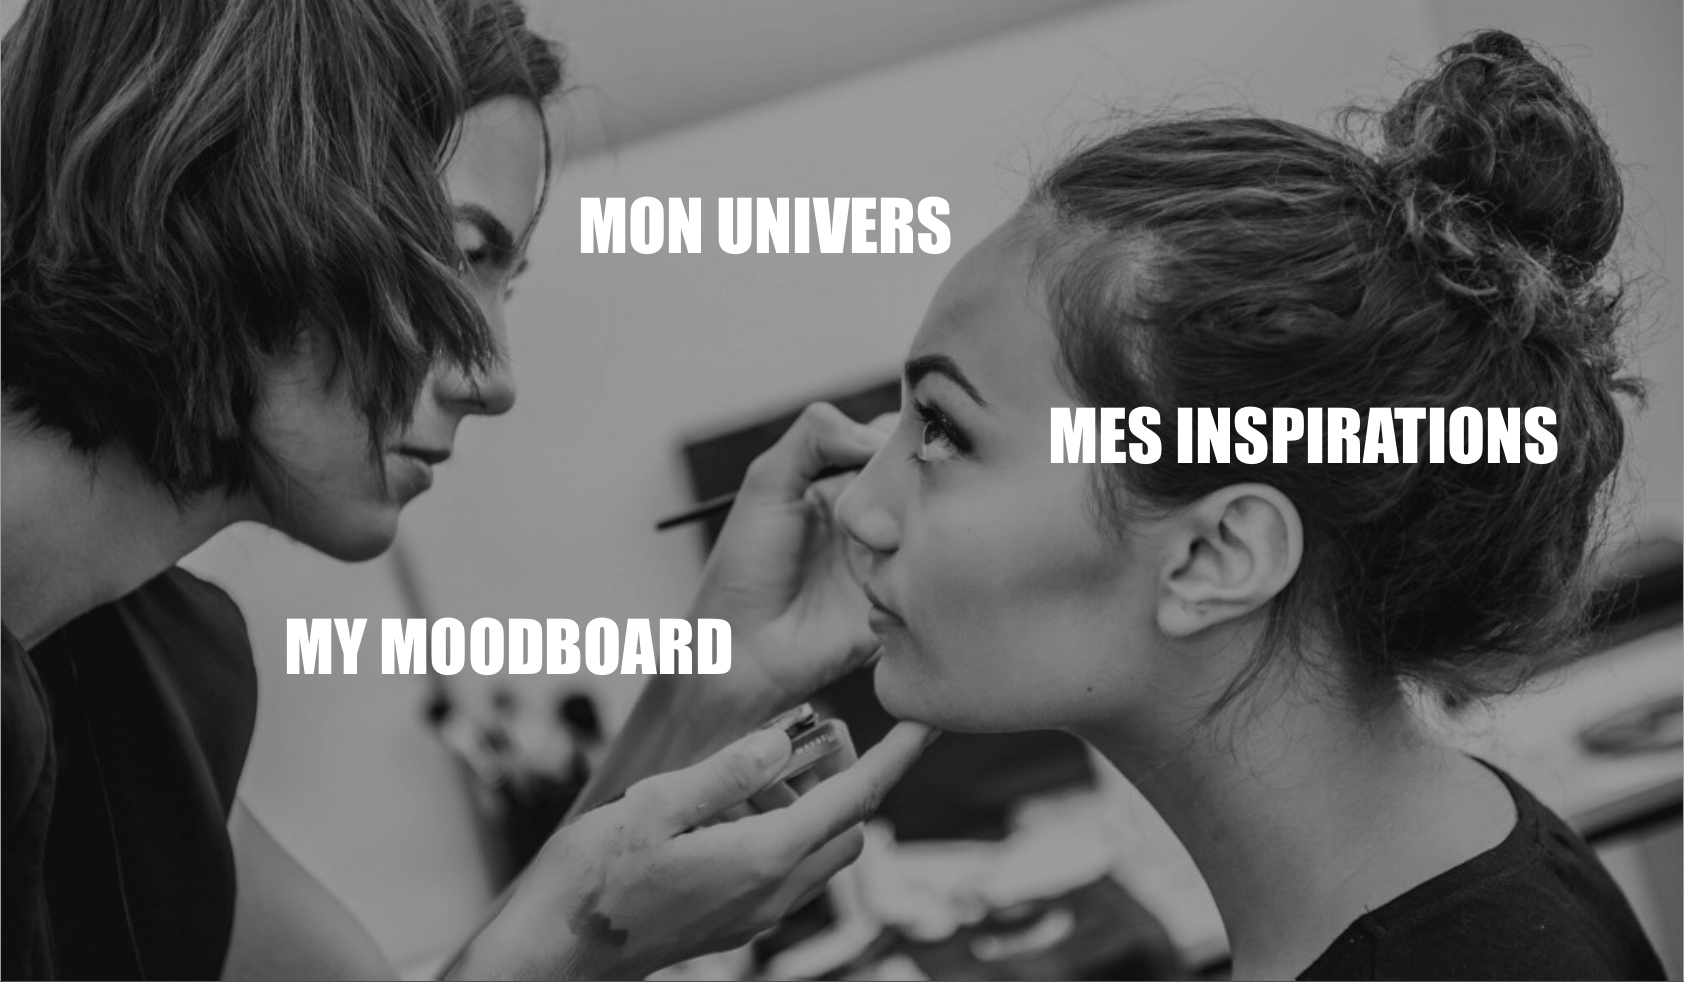 Mes inspirations